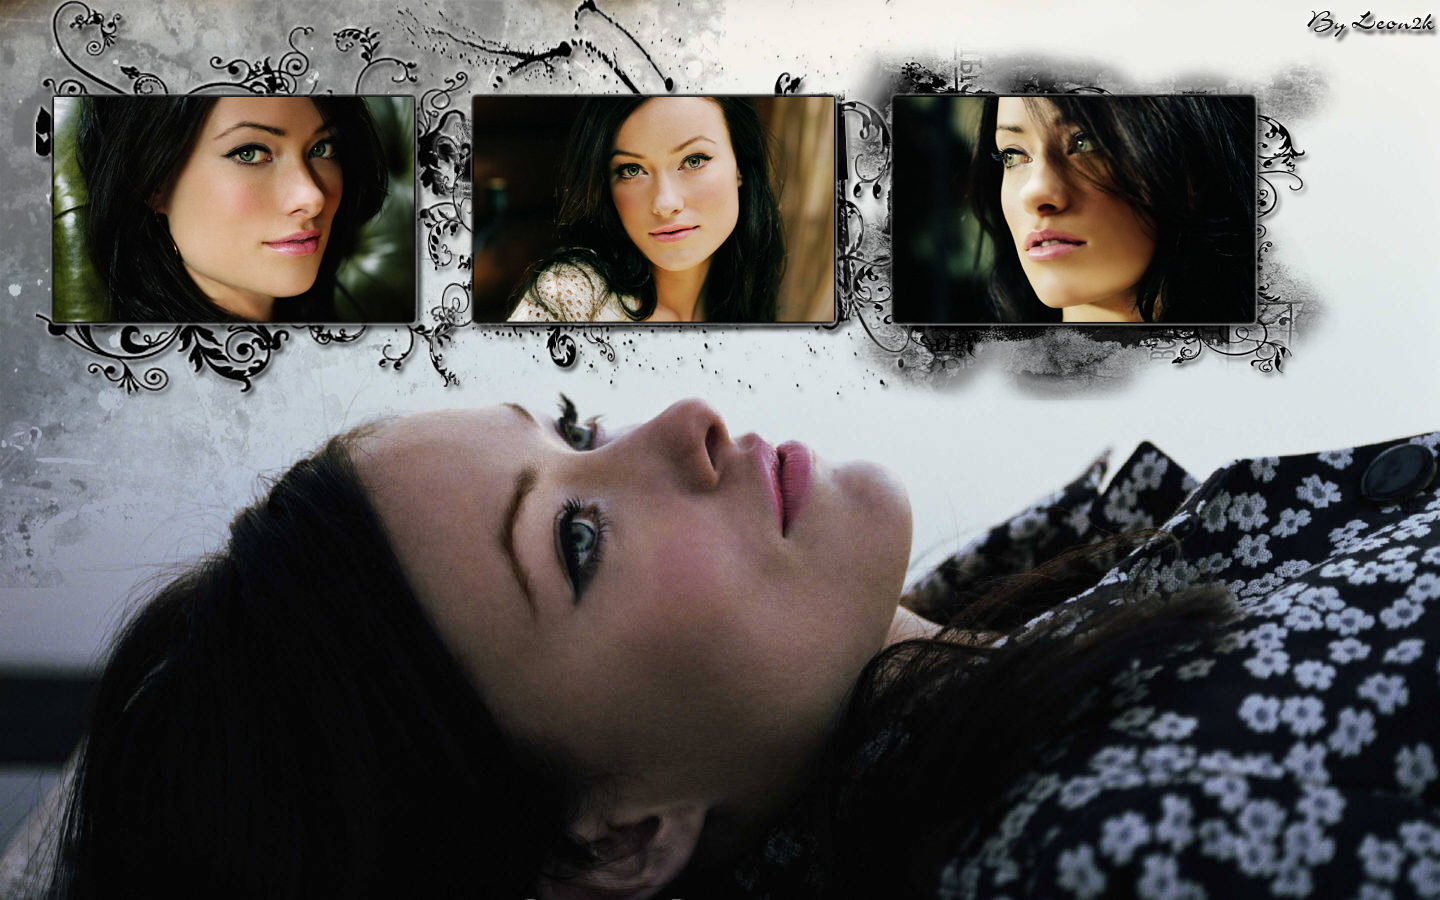 Olivia Wallpaper - Olivia Wilde 1440x900 1280x800